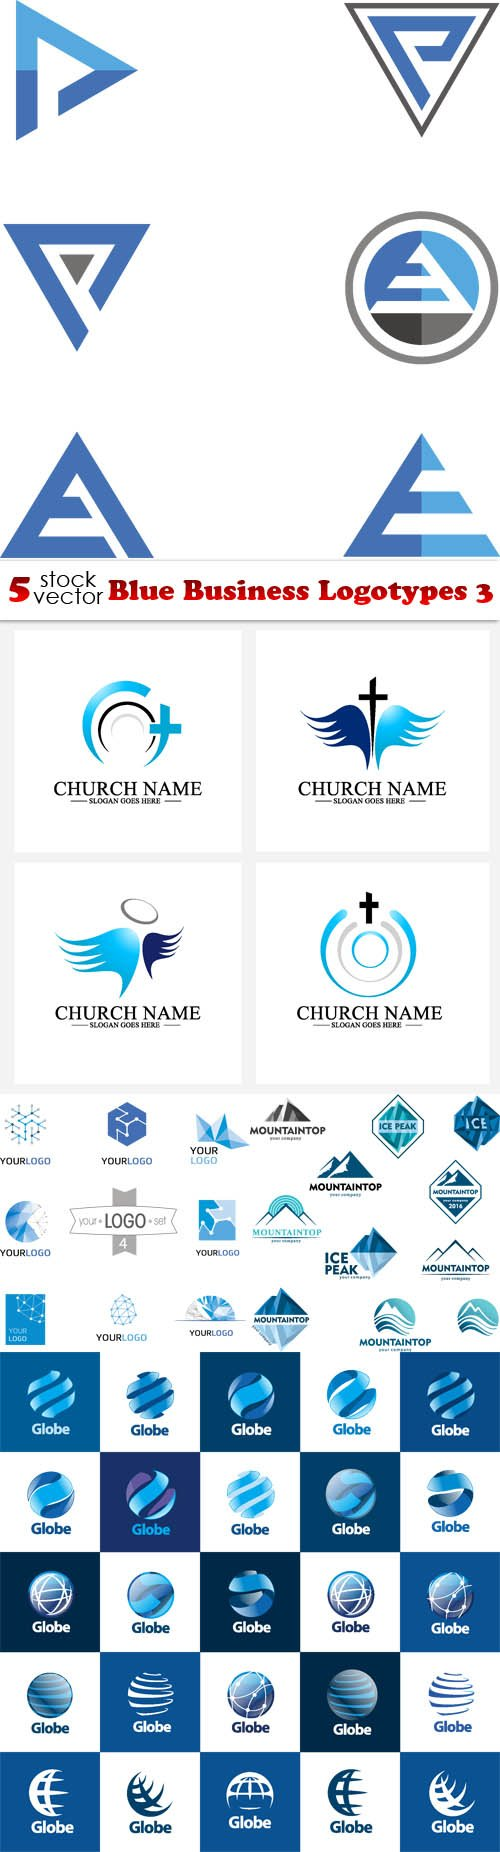 Vectors - Blue Business Logotypes 3